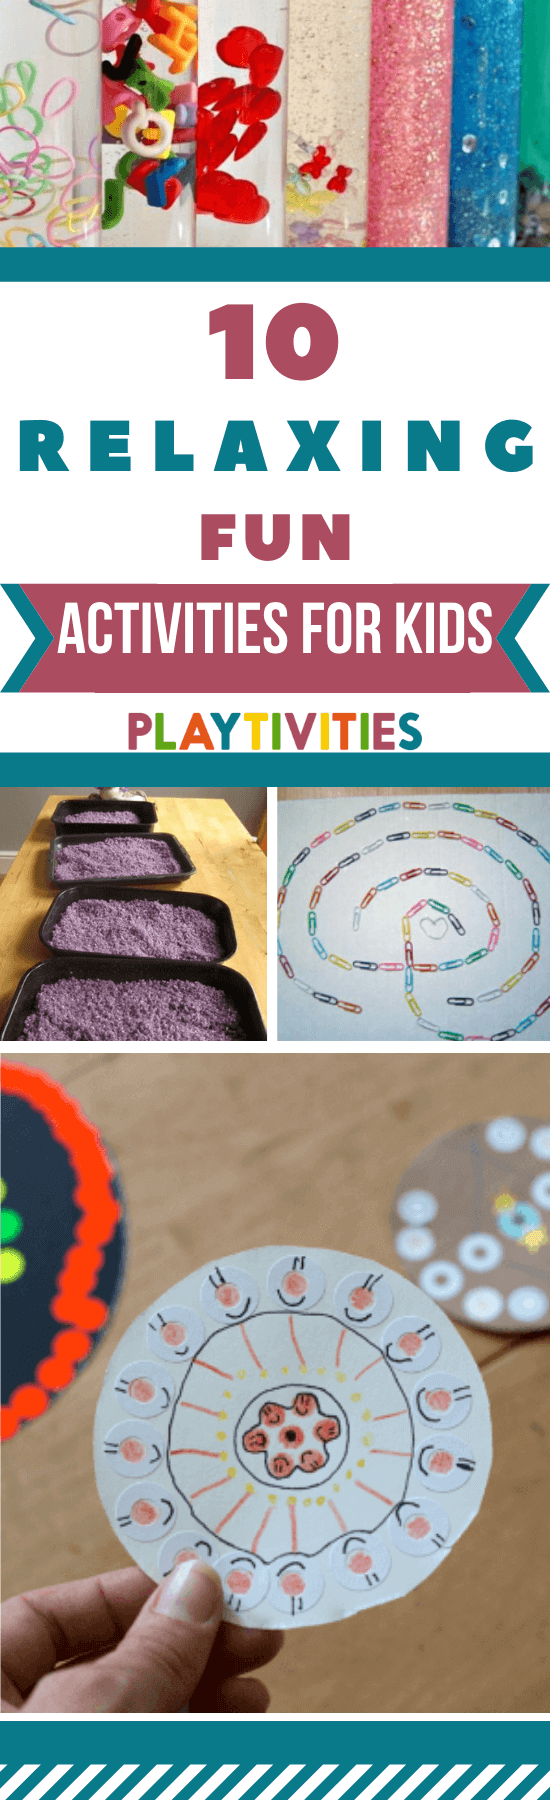 relaxing activities for kids